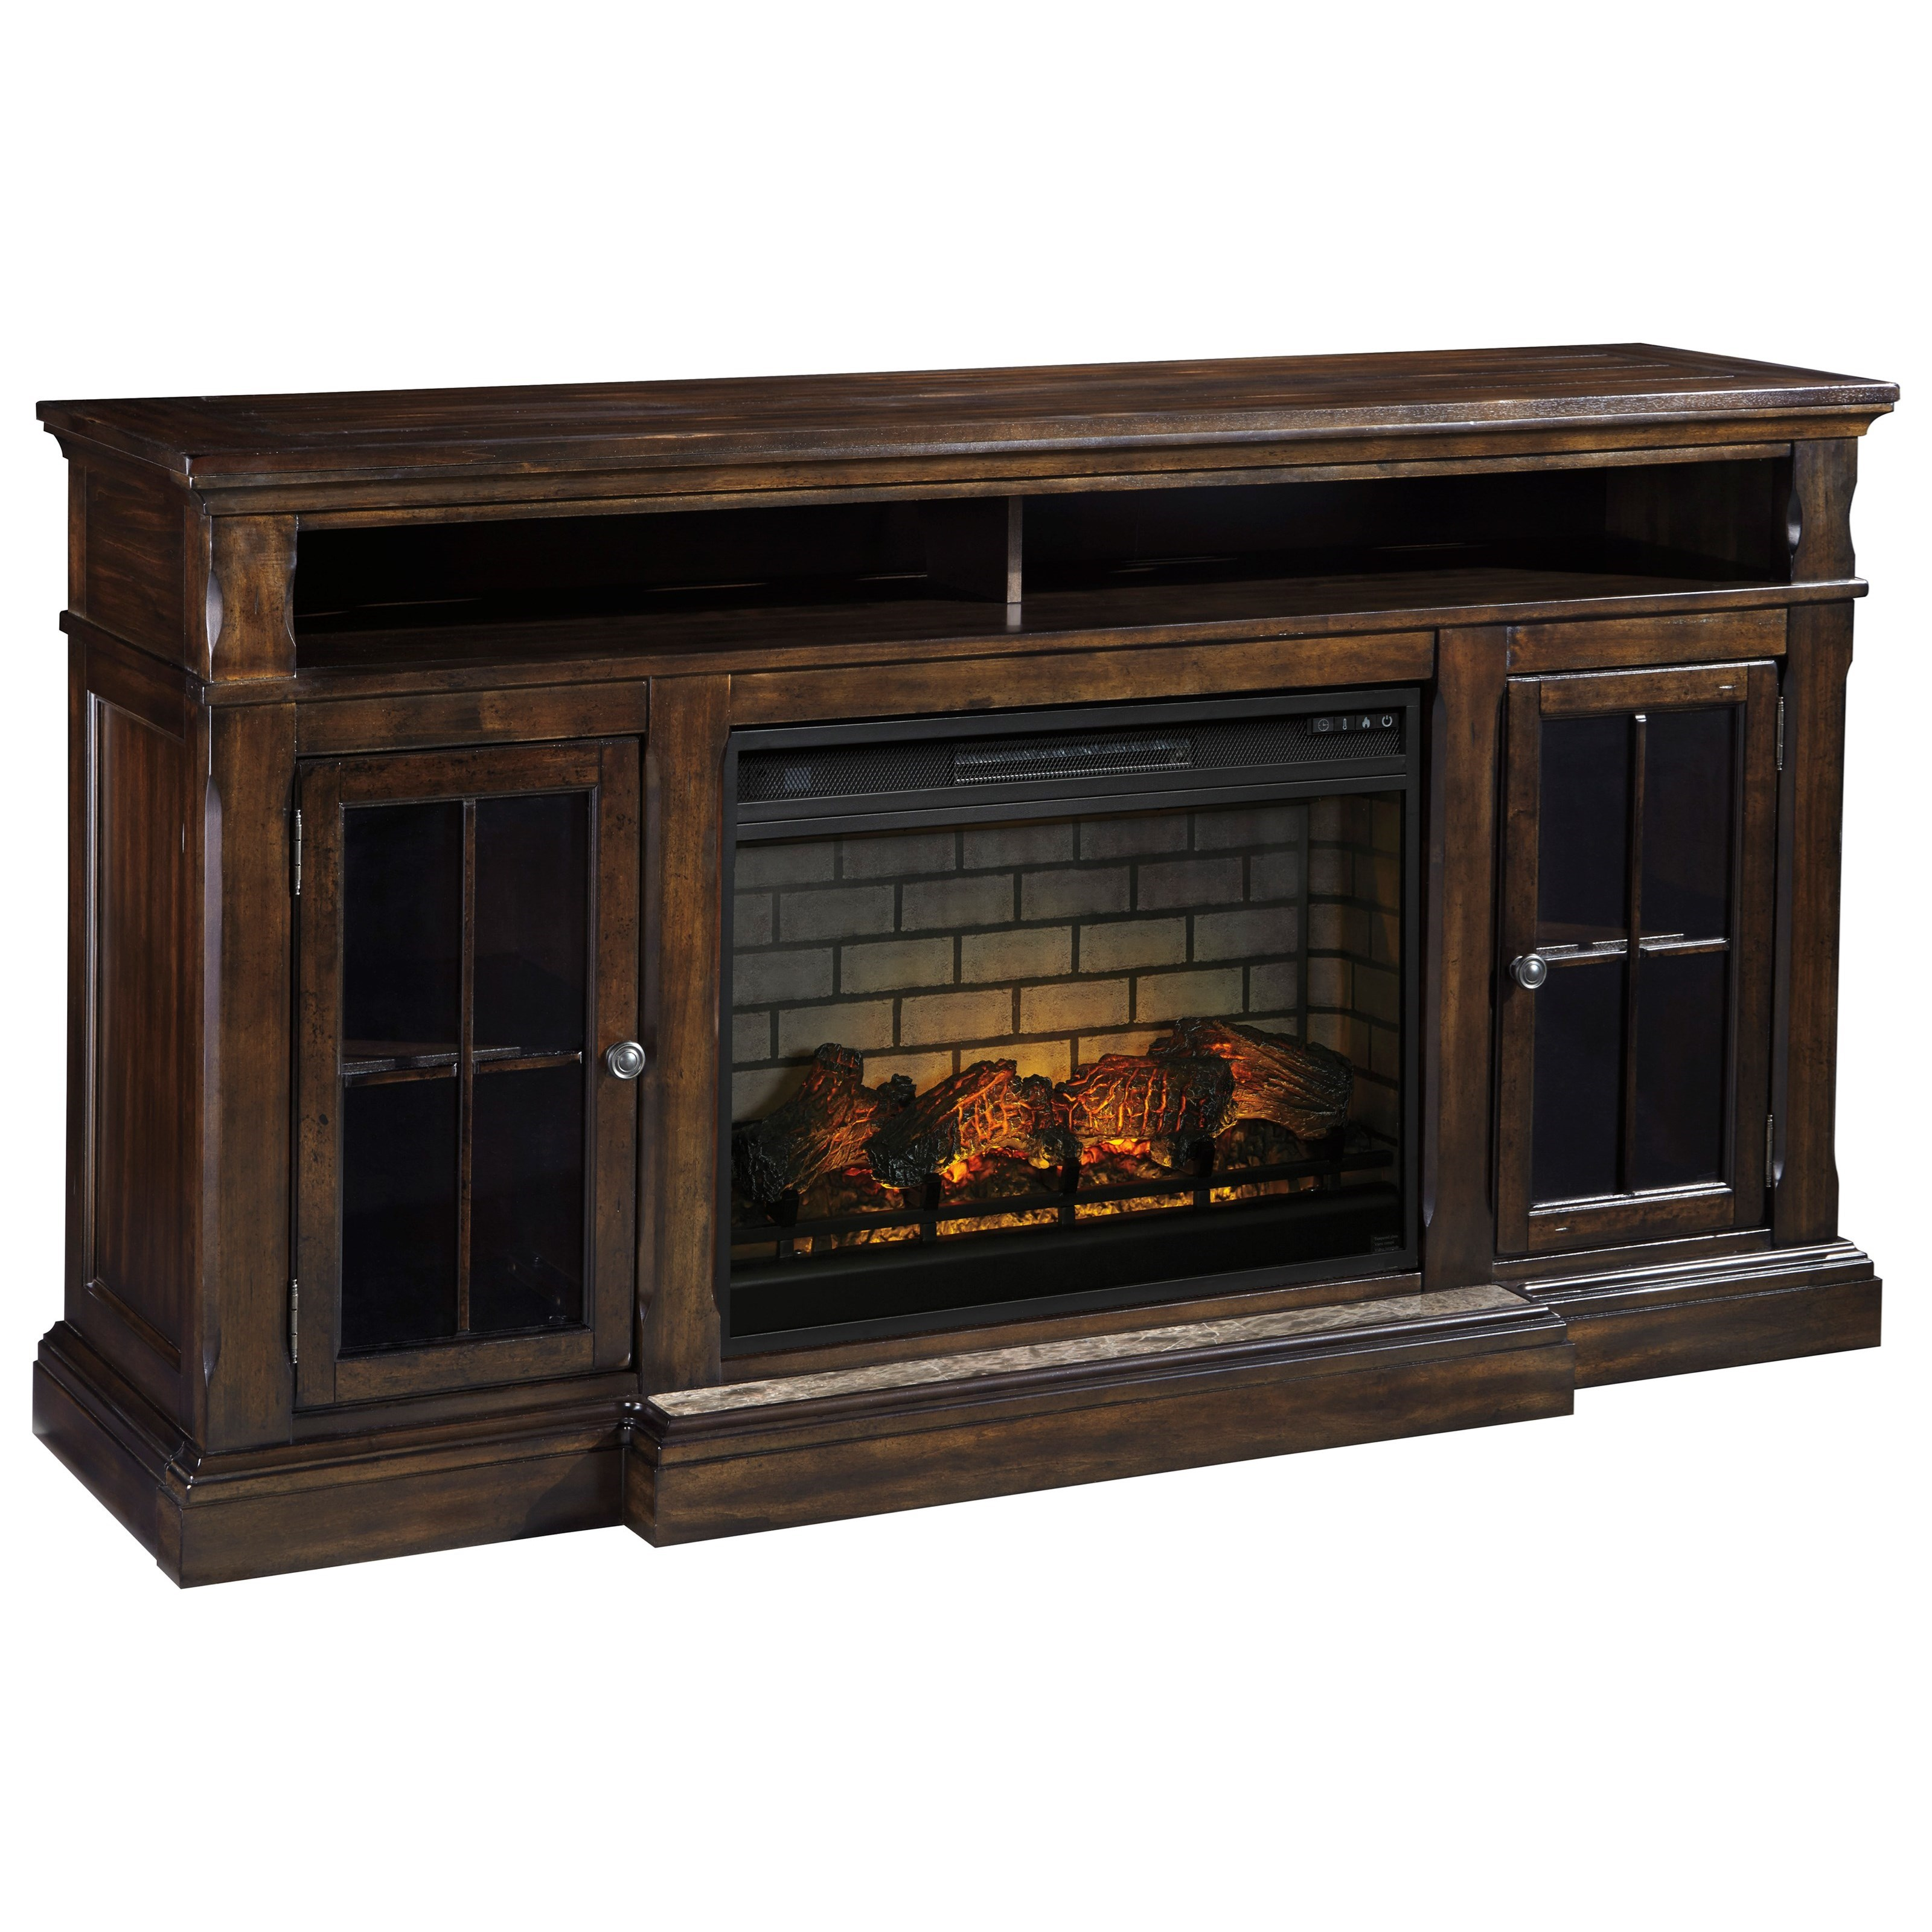 Roddinton Extra Large TV Stand with Fireplace Insert by Signature Design by Ashley at Darvin Furniture